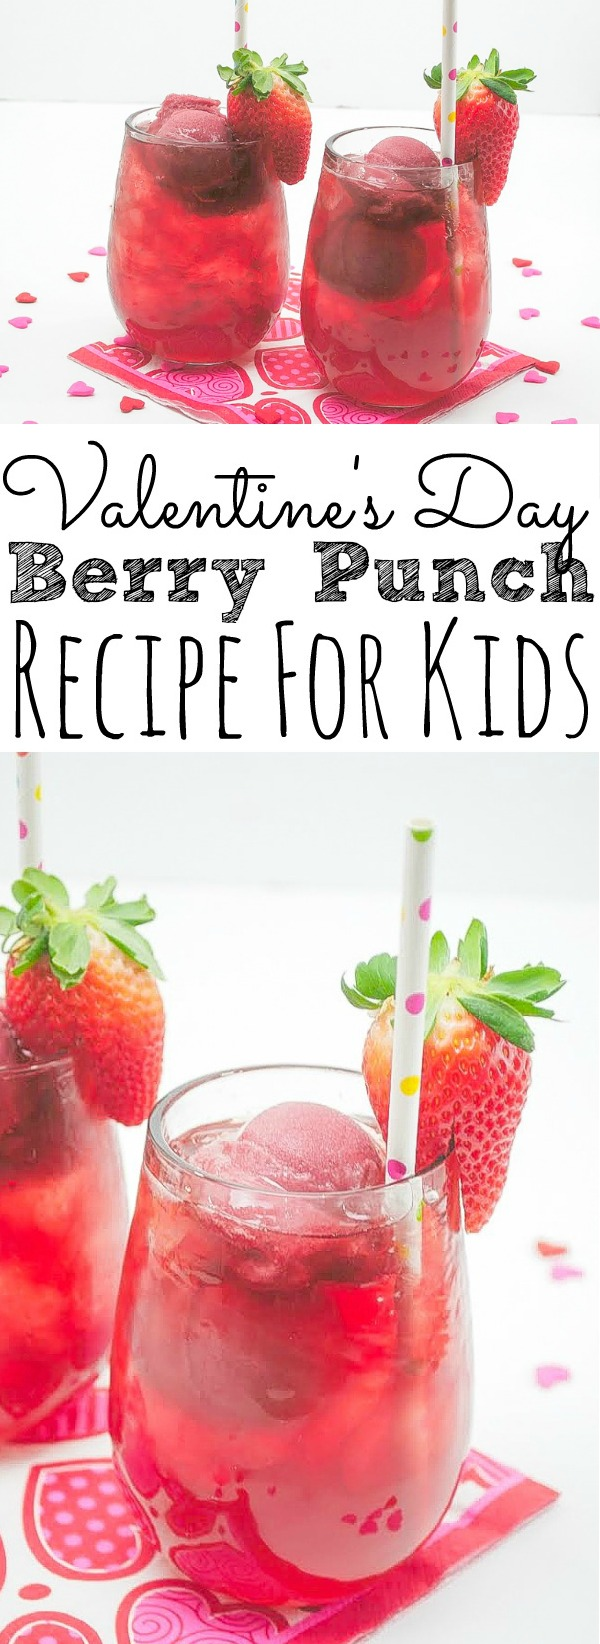 Valentine's Day Ideas For Kids Recipe Drink